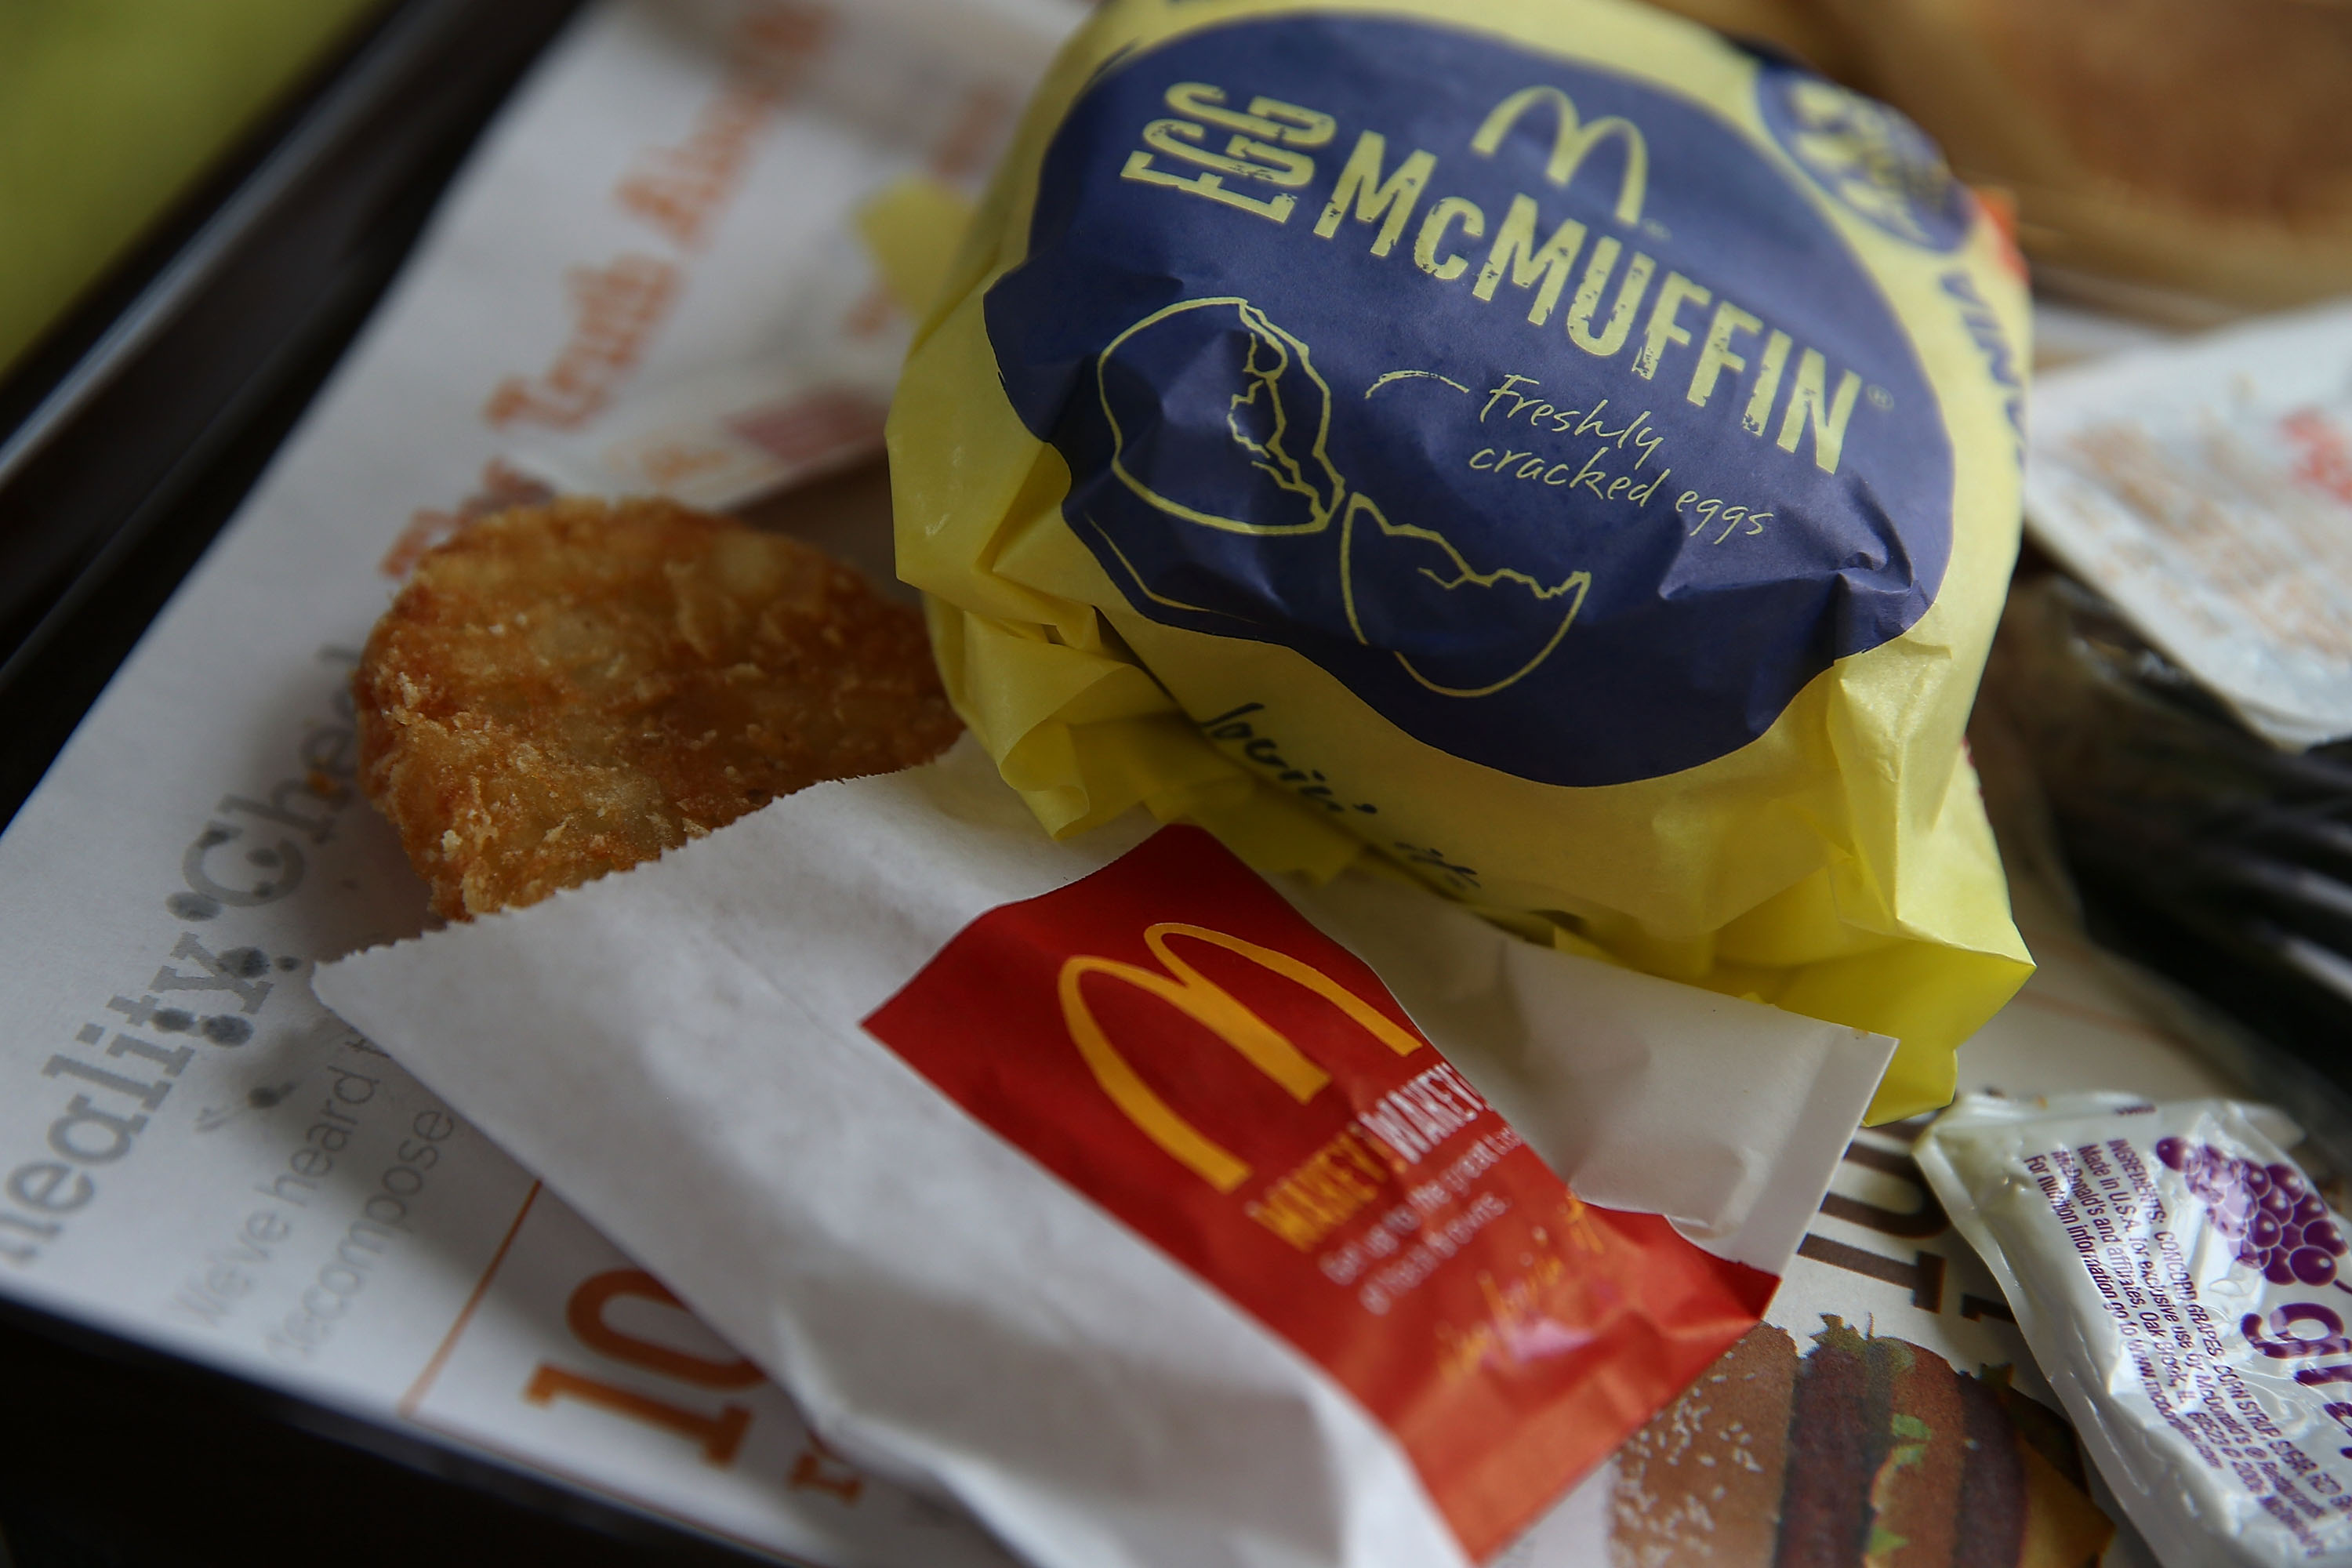 A McDonald's Egg McMuffin and hash browns are displayed at a McDonald's restaurant on July 23, 2015 in Fairfield, California.